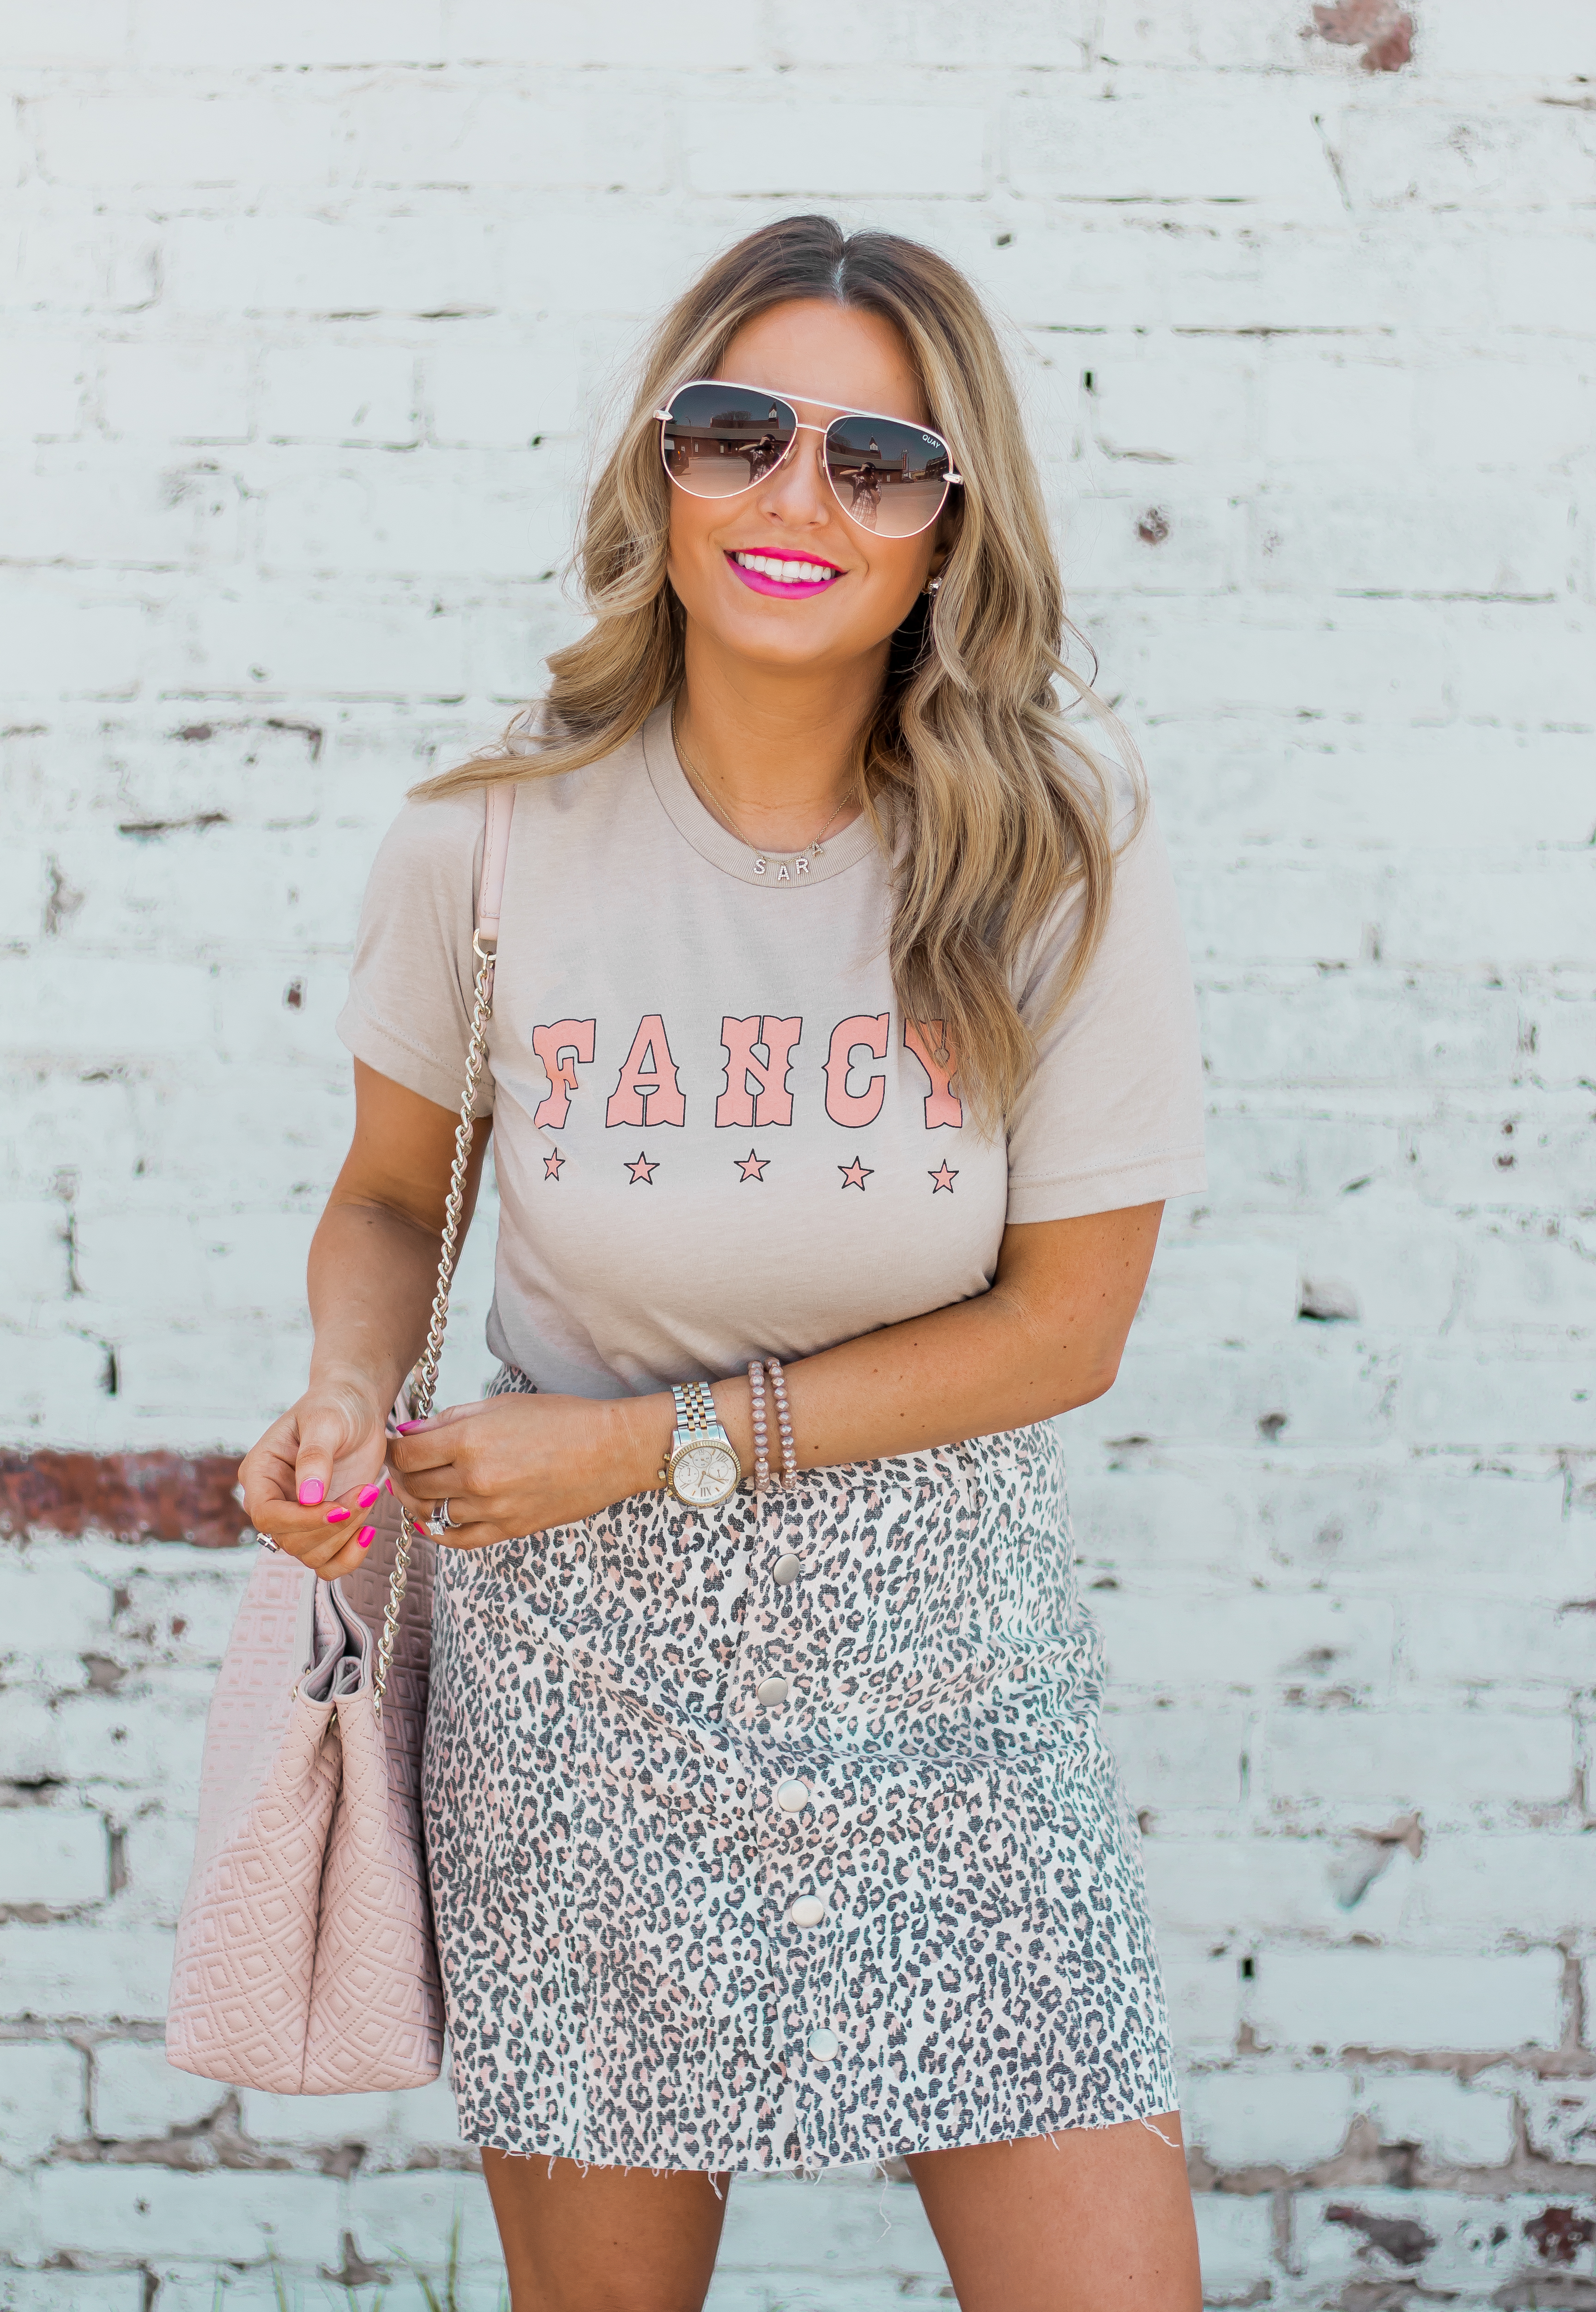 Fancy Graphic Tee-Leopard Skirt-Sugar Boutique-$250 Gift Card Giveaway-Tory Burch Fleming Bag-Quay Sunglasses-Sabby Style-Omaha Blogger-Women's Fashion-Spring Fashion-Summer Outfit-1